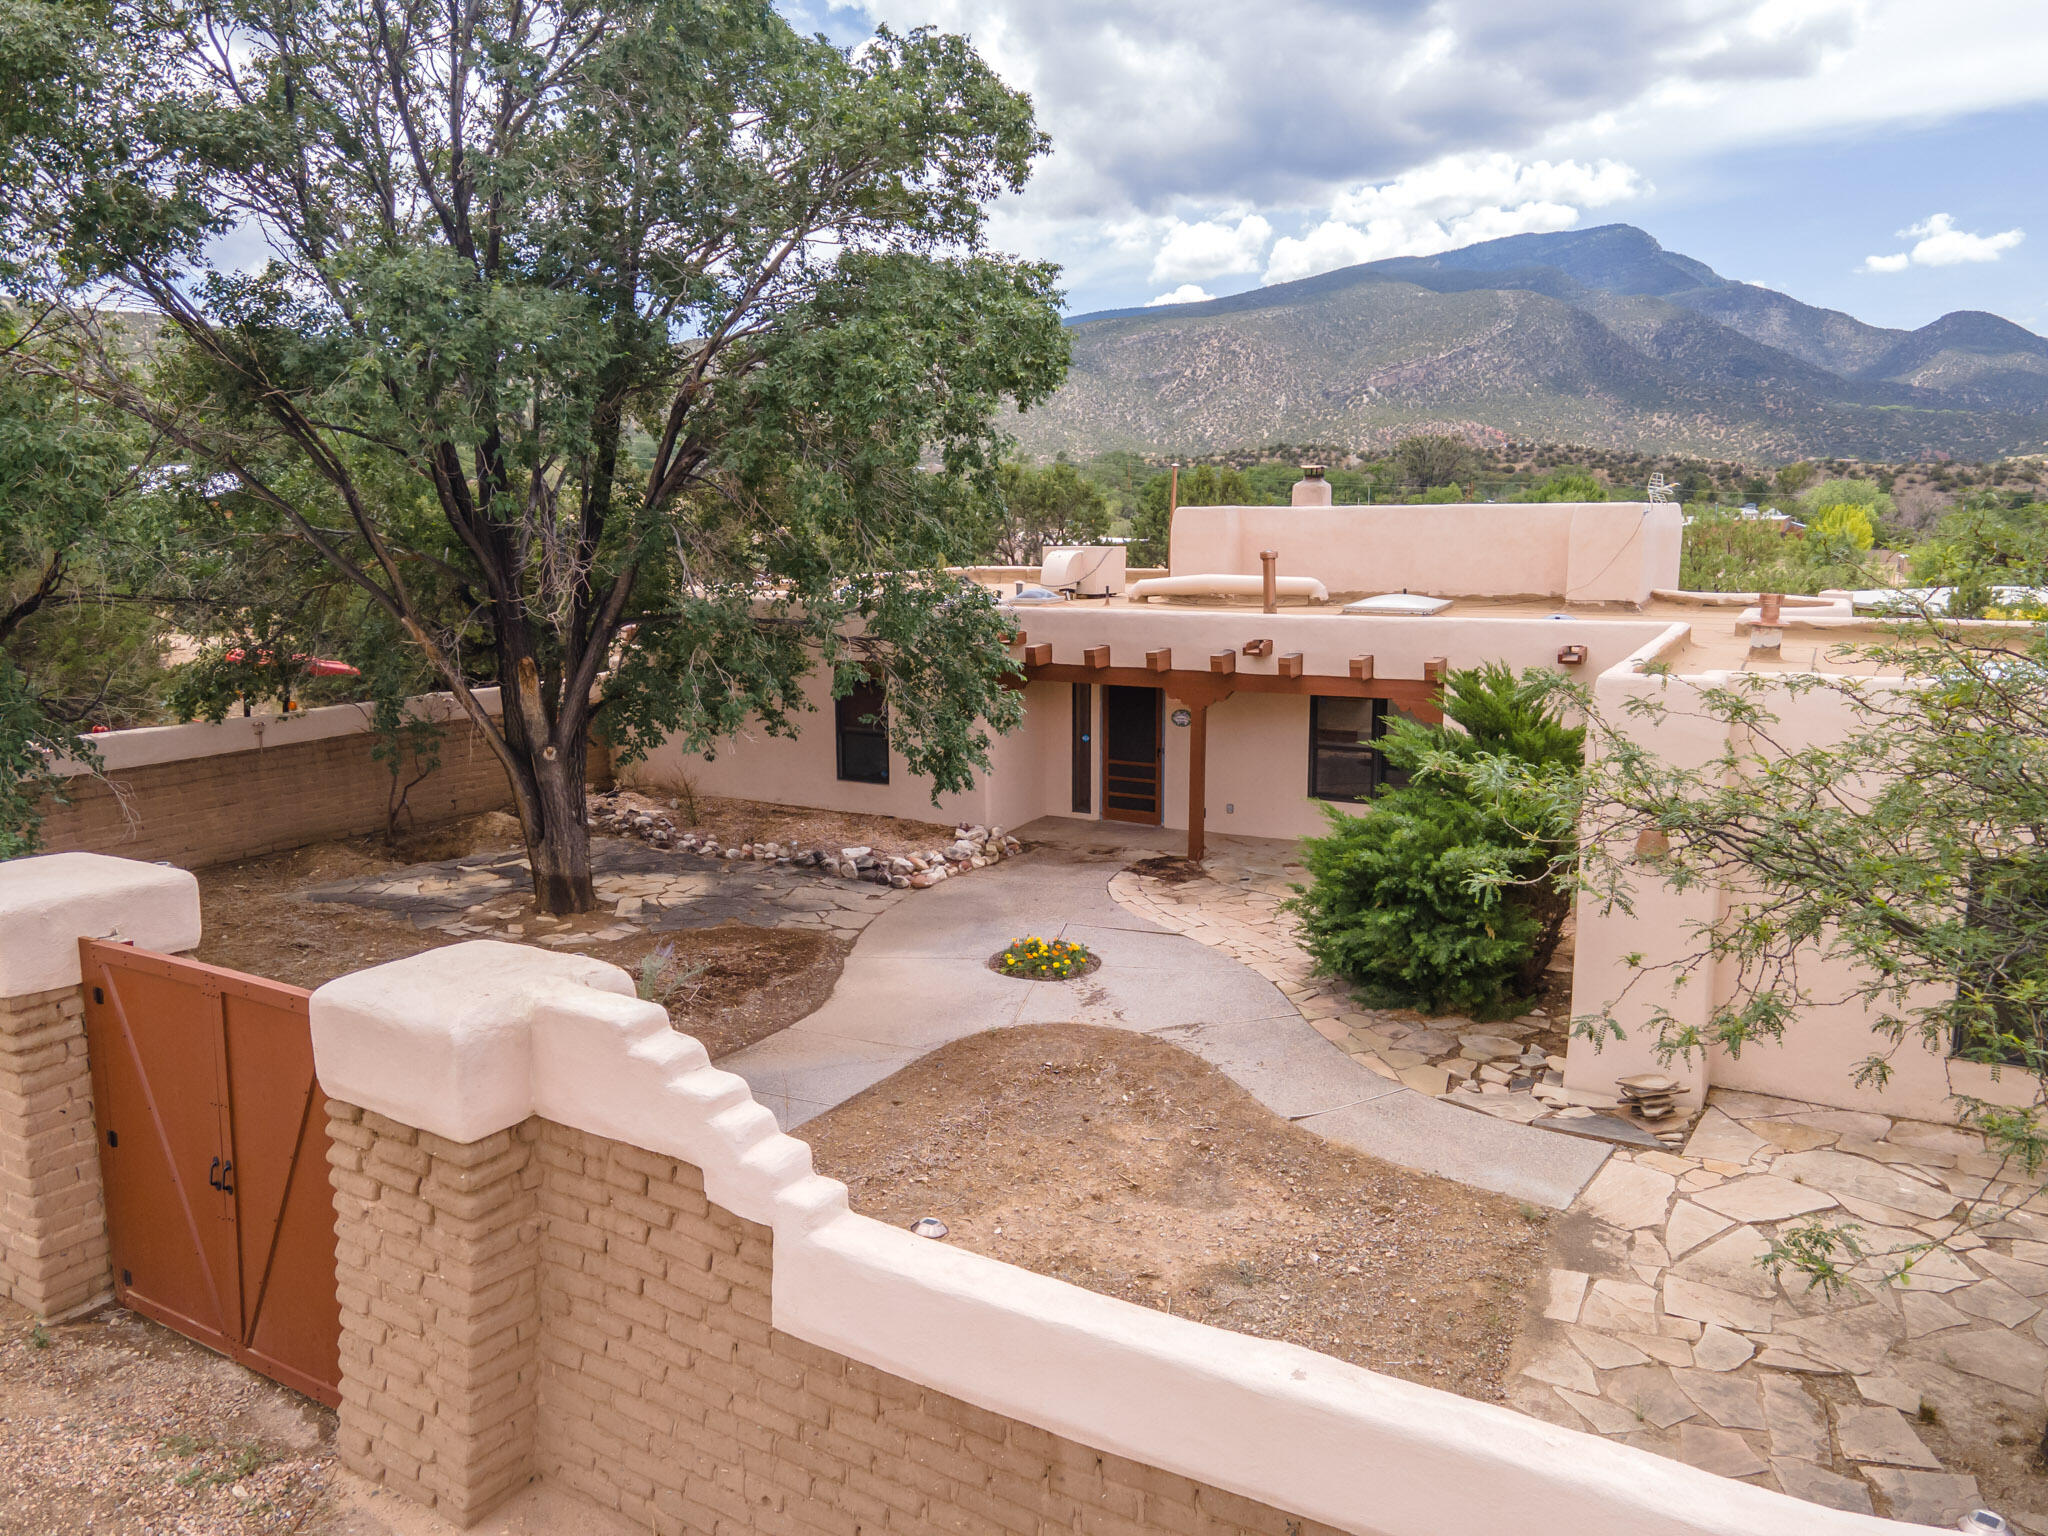 Beautifully renovated home nestled in quiet Placitas. All upgrades are under 2 years old. Bright floodlights illuminate the property which is enclosed by TALL privacy walls. Custom gates which match the garage doors. Walk in the front door to find that the entrance now opens to a light and airy kitchen. The soaring ceiling and picture window make the living room seem to go on and on giving you the feeling of being right in the Sandia Mountains. The attached greenhouse can be home to your year round garden. Relax in here protected from the elements or on the patio next to the fireplace and trickling fountain. The refurbished garage makes it great for an art studio or a man/woman cave to escape to. VA assumable loan is also an available financing.